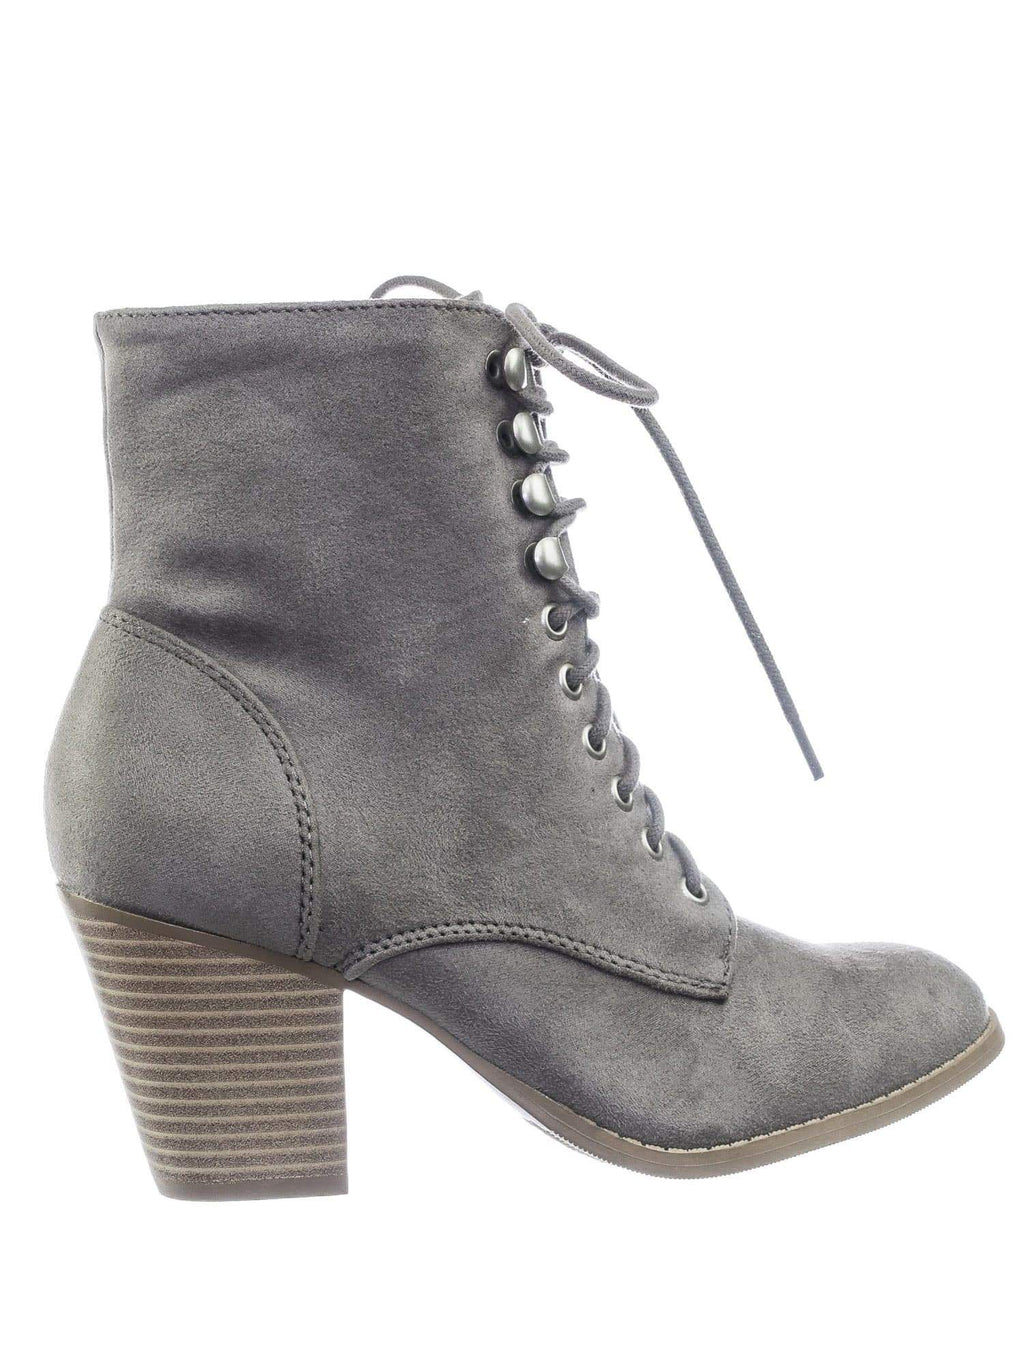 Wanda SGreySu Women's Lace Up Military Combat Chunky Block High Heel Ankle bootie